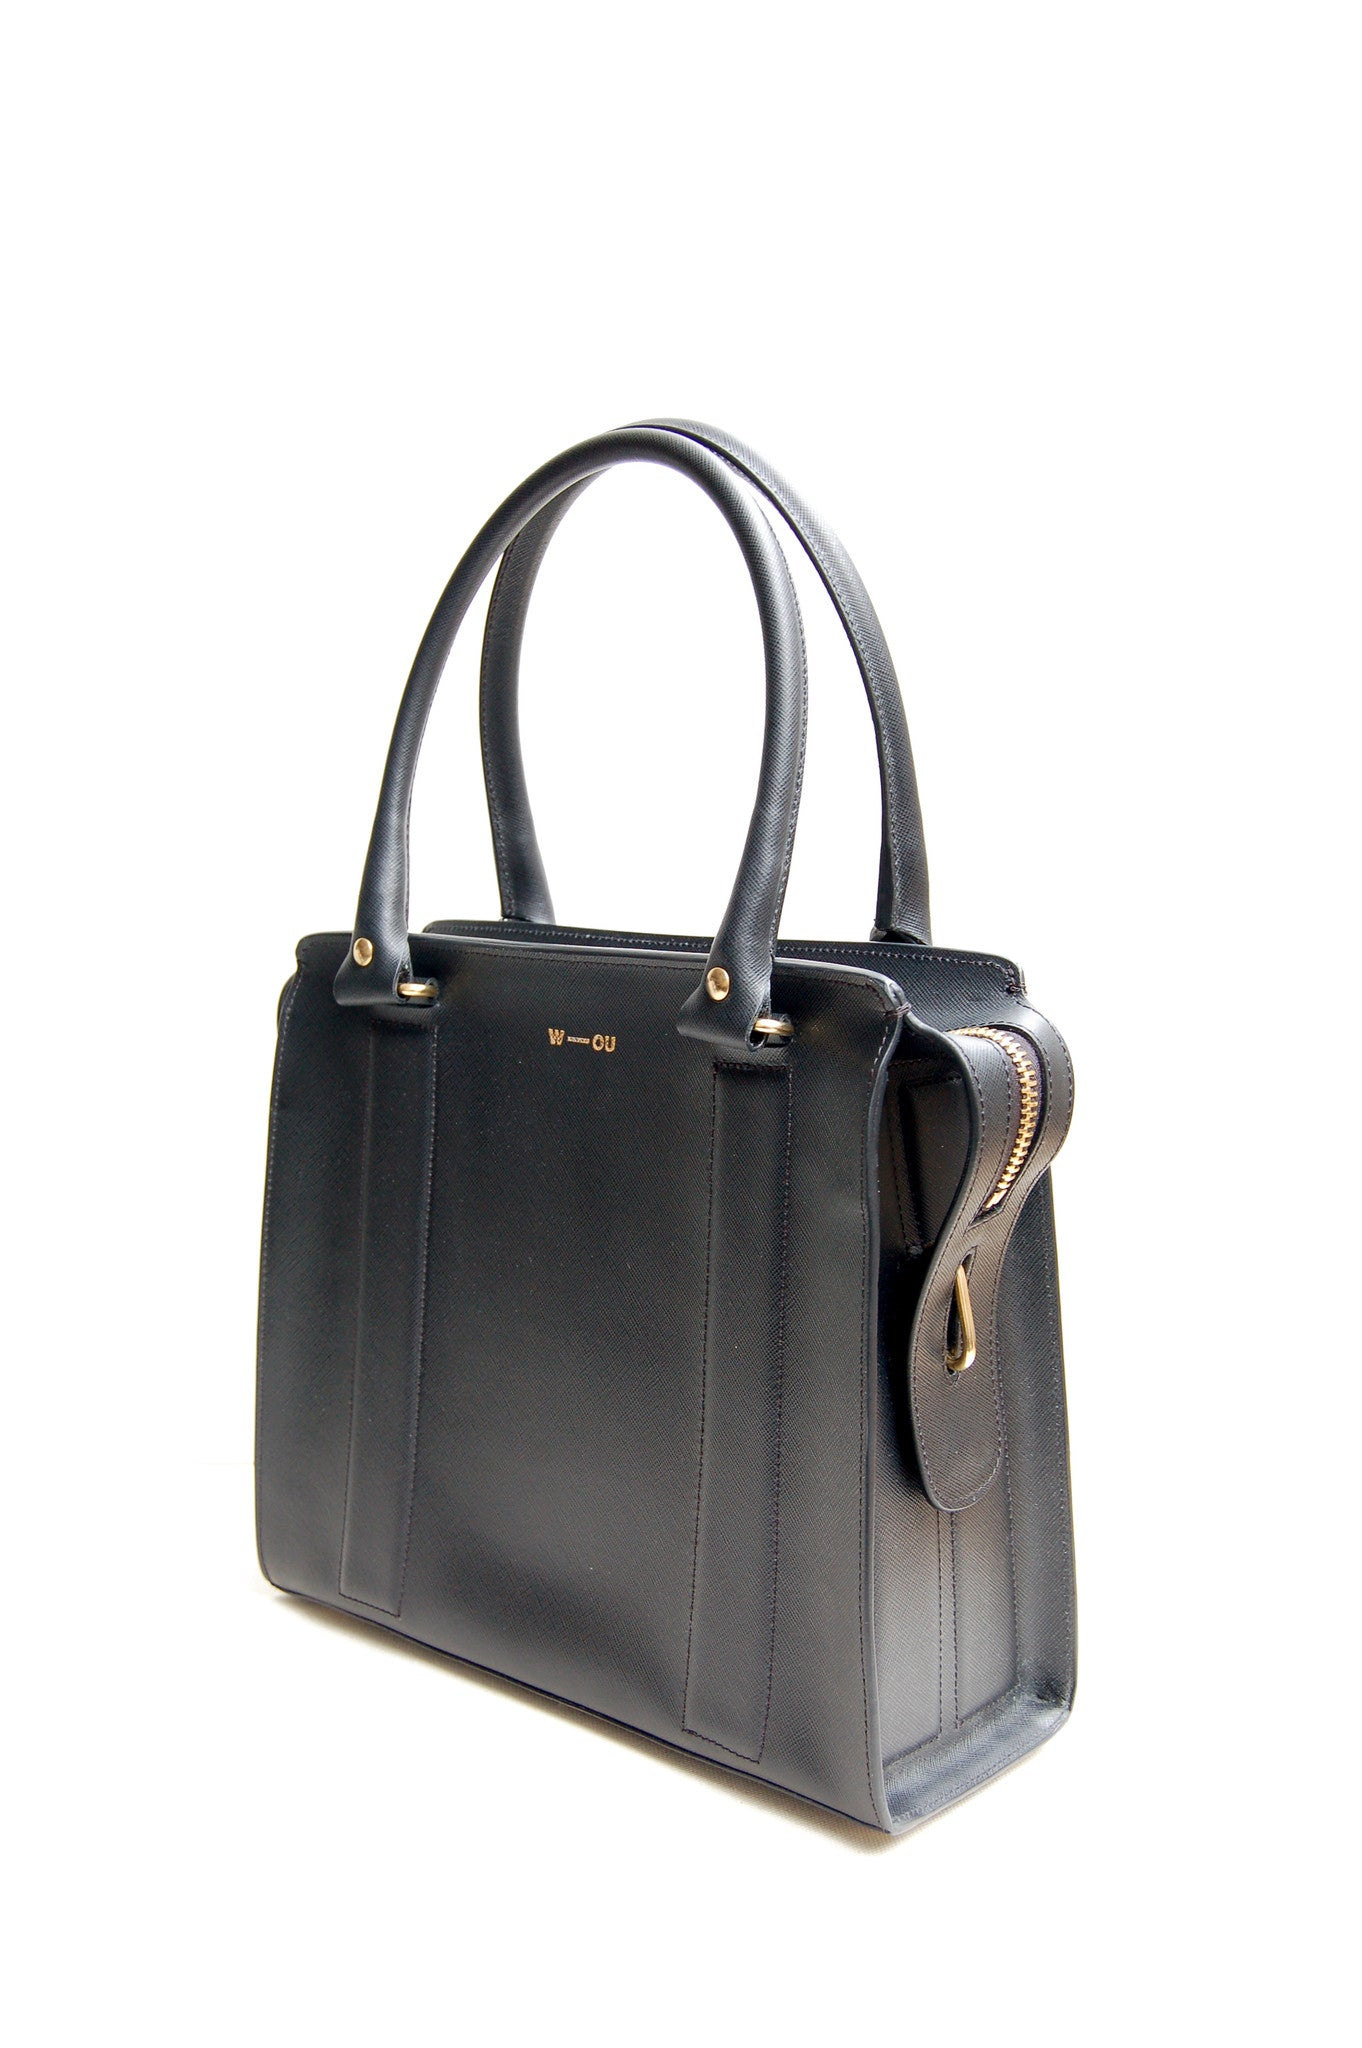 Wendee Ou: Middleton structured bag black | Bags > Handbags,Bags -  Hiphunters Shop